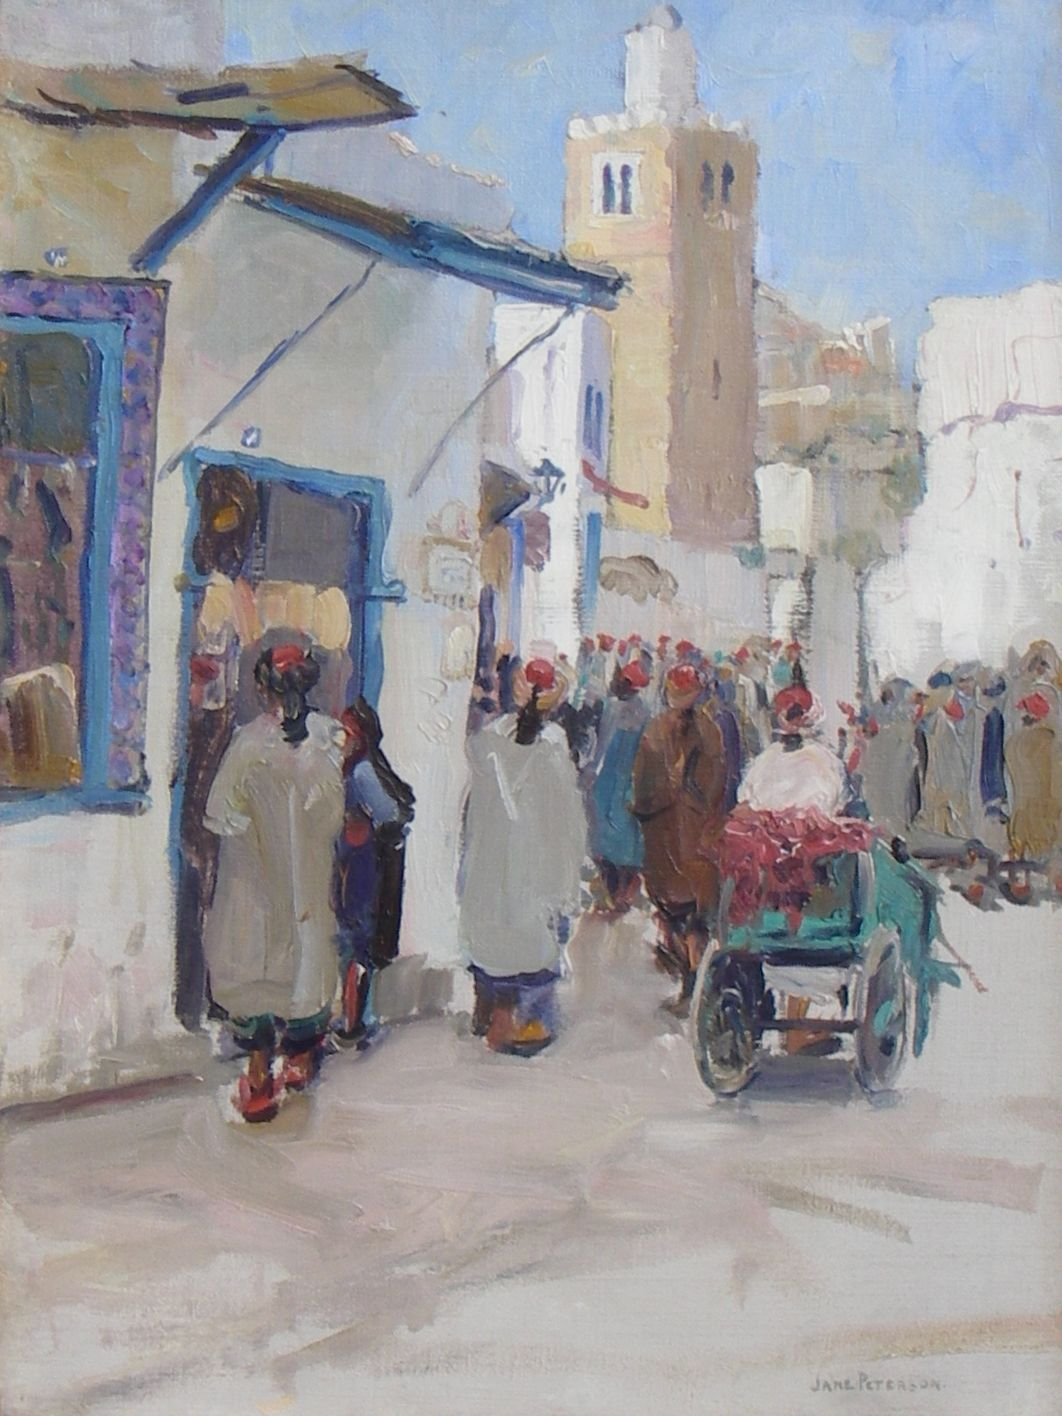 Jane Peterson, Street Scene Tunis